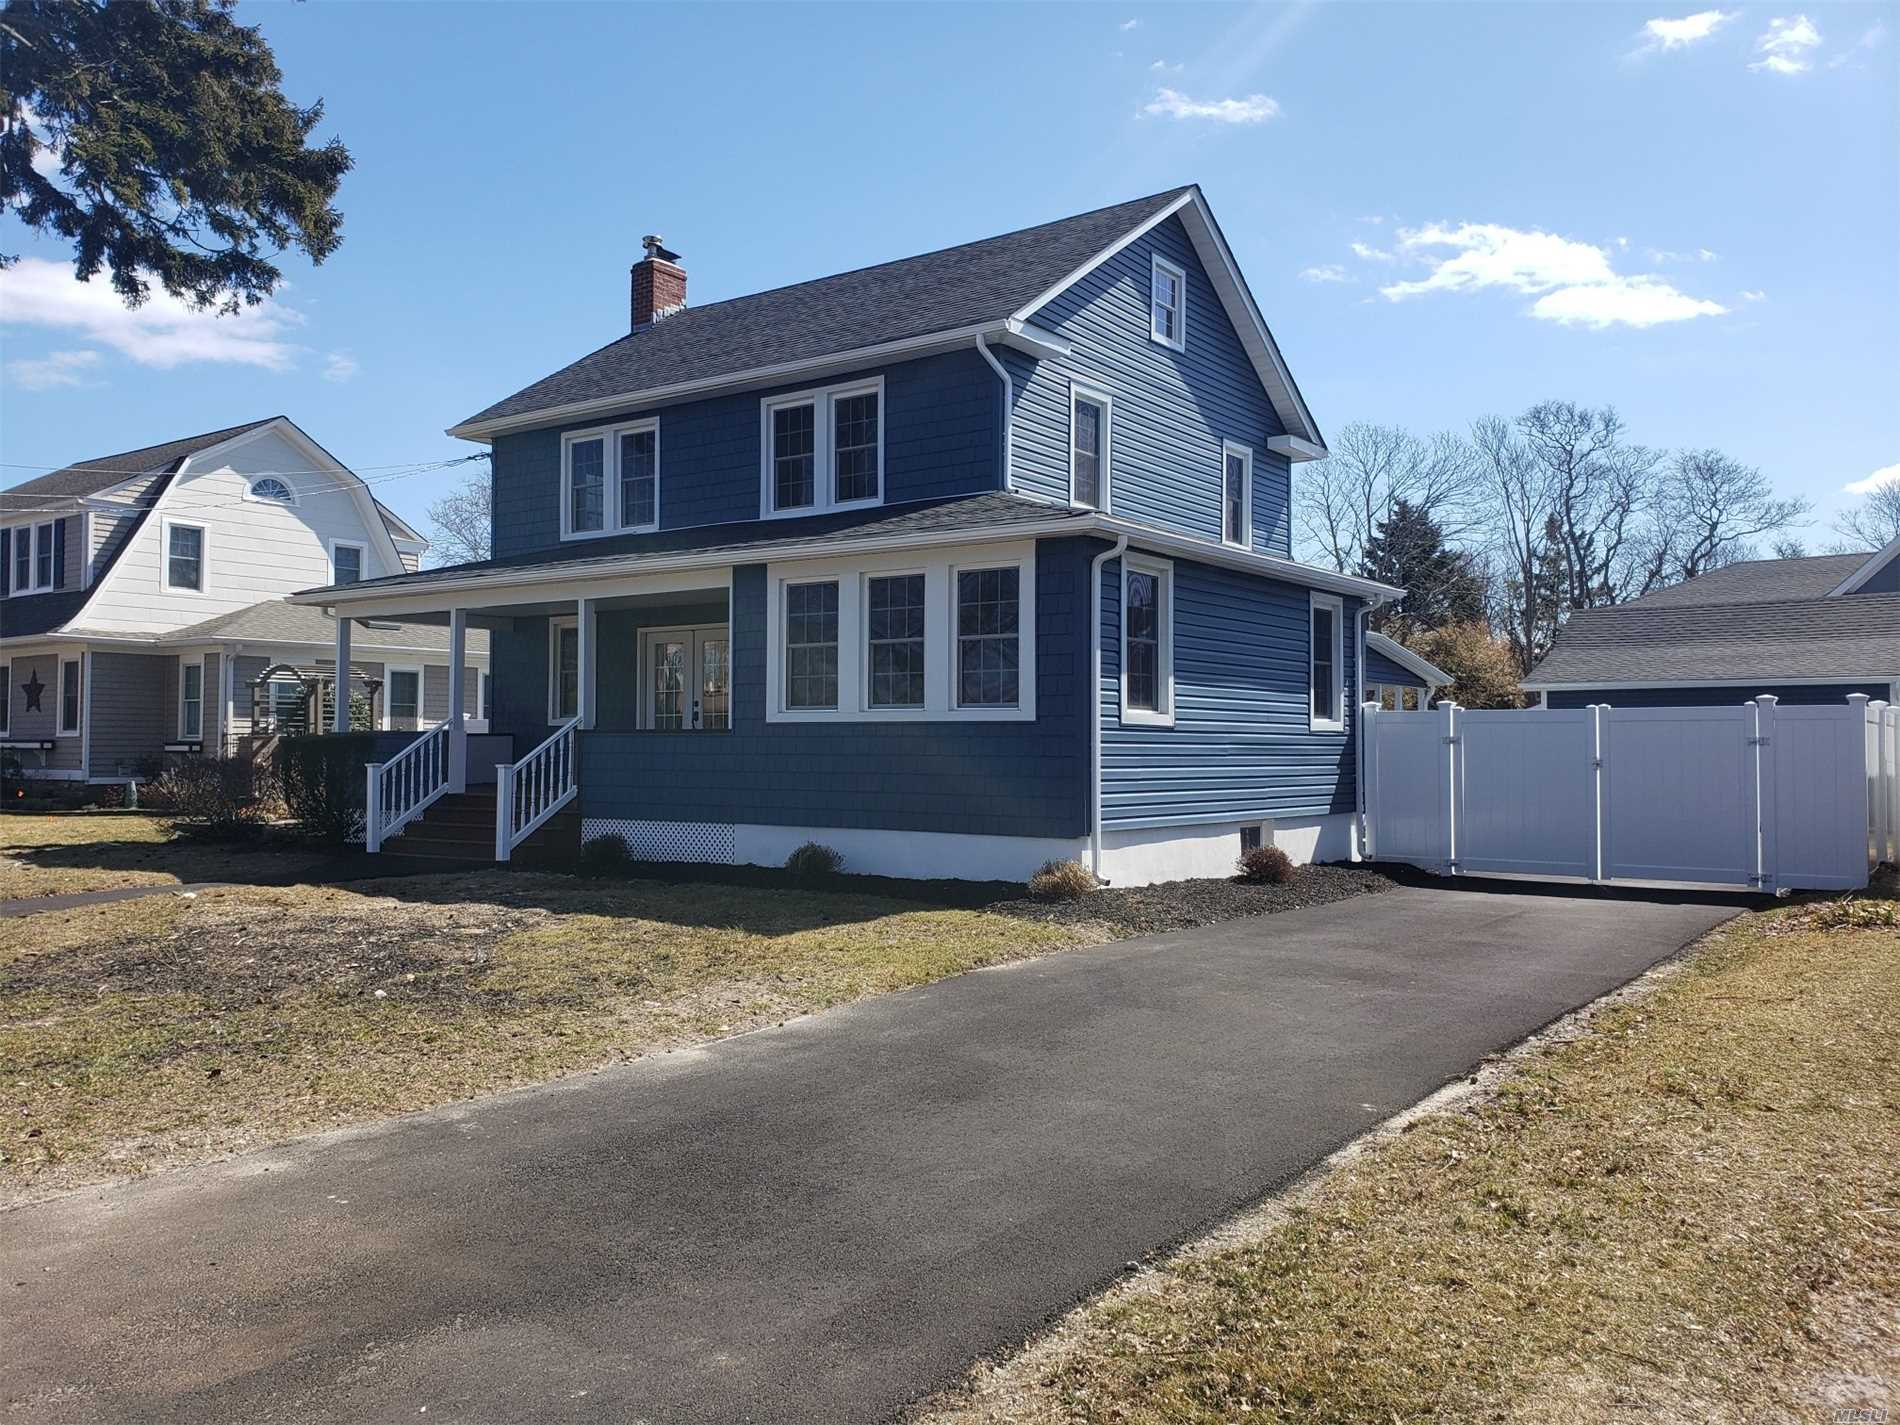 Beautiful restored colonial south of montauk in a well desired school district. Featuring all new kitchen, baths, hardwood floors, cac, windows, roof and 2 car garage. Kitchen has white farm sink and quartz countertop with an oversized pantry. Laundry room on first floor with mudroom and a covered porch to enjoy your backyard. Welcome Home!